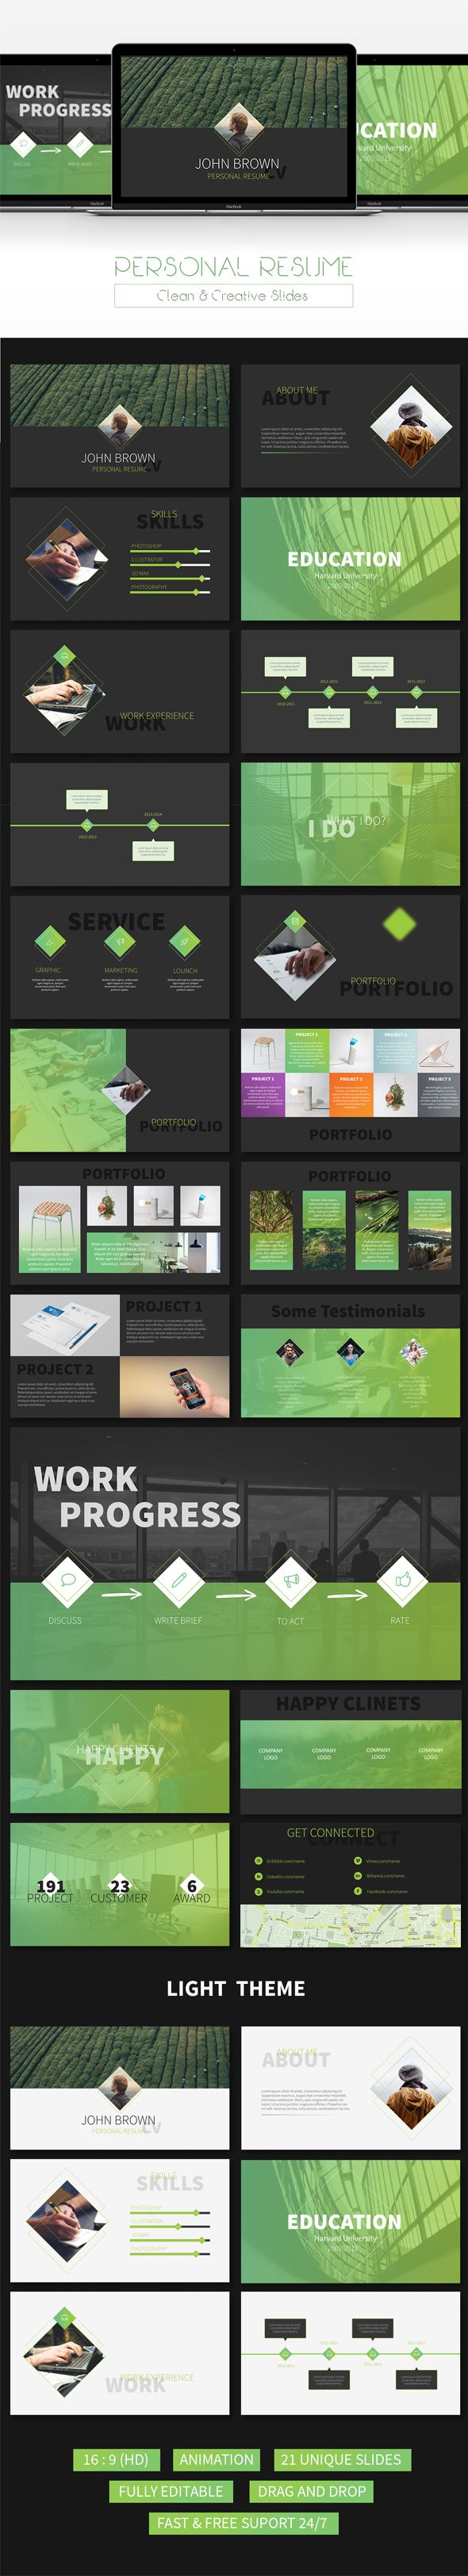 Premium Powerpoint Template http://graphicriver.net/item/resume-creative-powerpoint-template/15403025